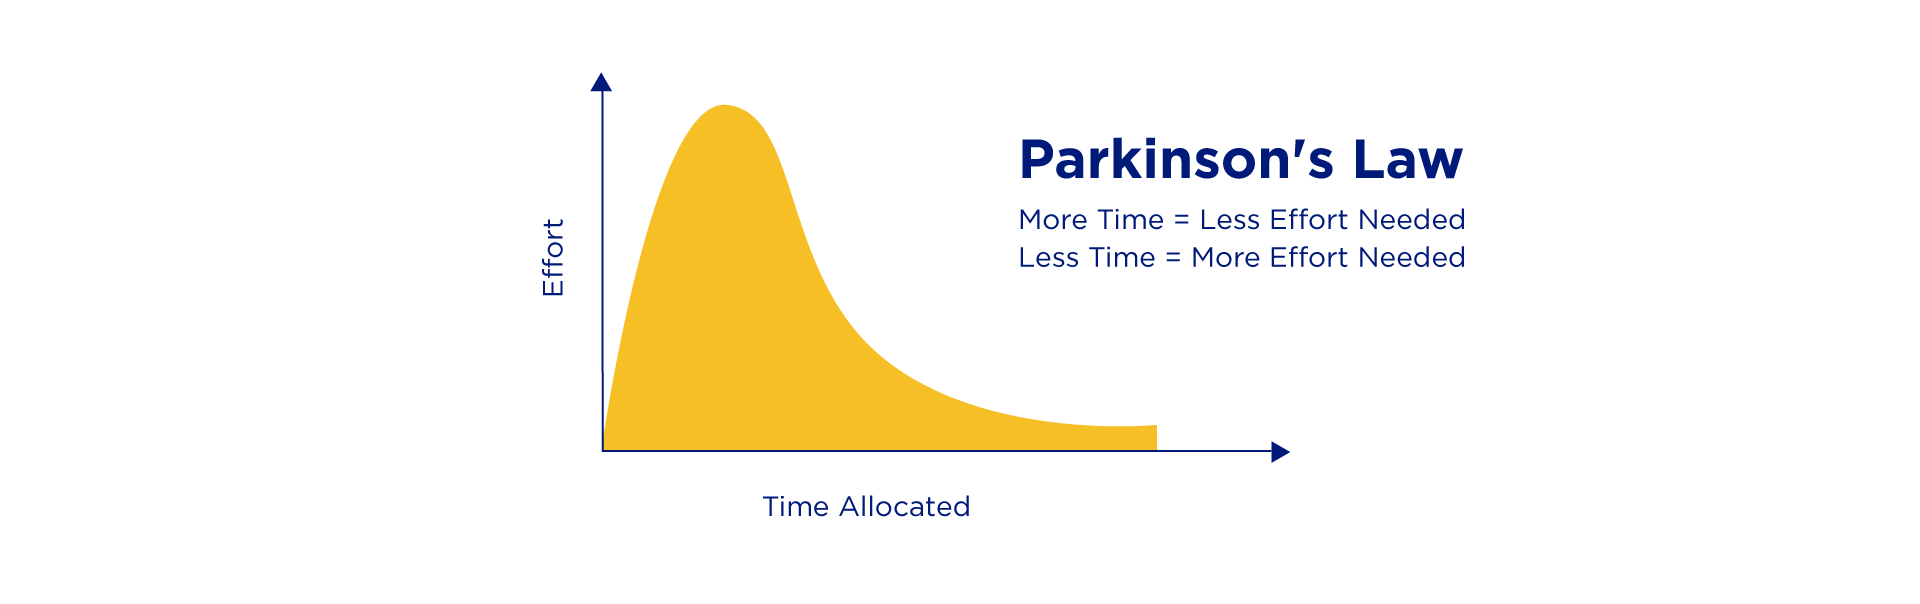 """According to Parkinson's Law, the more time we allocate to a job, it's like we will use all of it and some more. For example, if we think it will take 30 minutes to reply to emails, we will use all this time to do exactly this. But, if we time box this task by saying, """"I will reply to 10 emails in 20 minutes"""", we will be more efficient."""